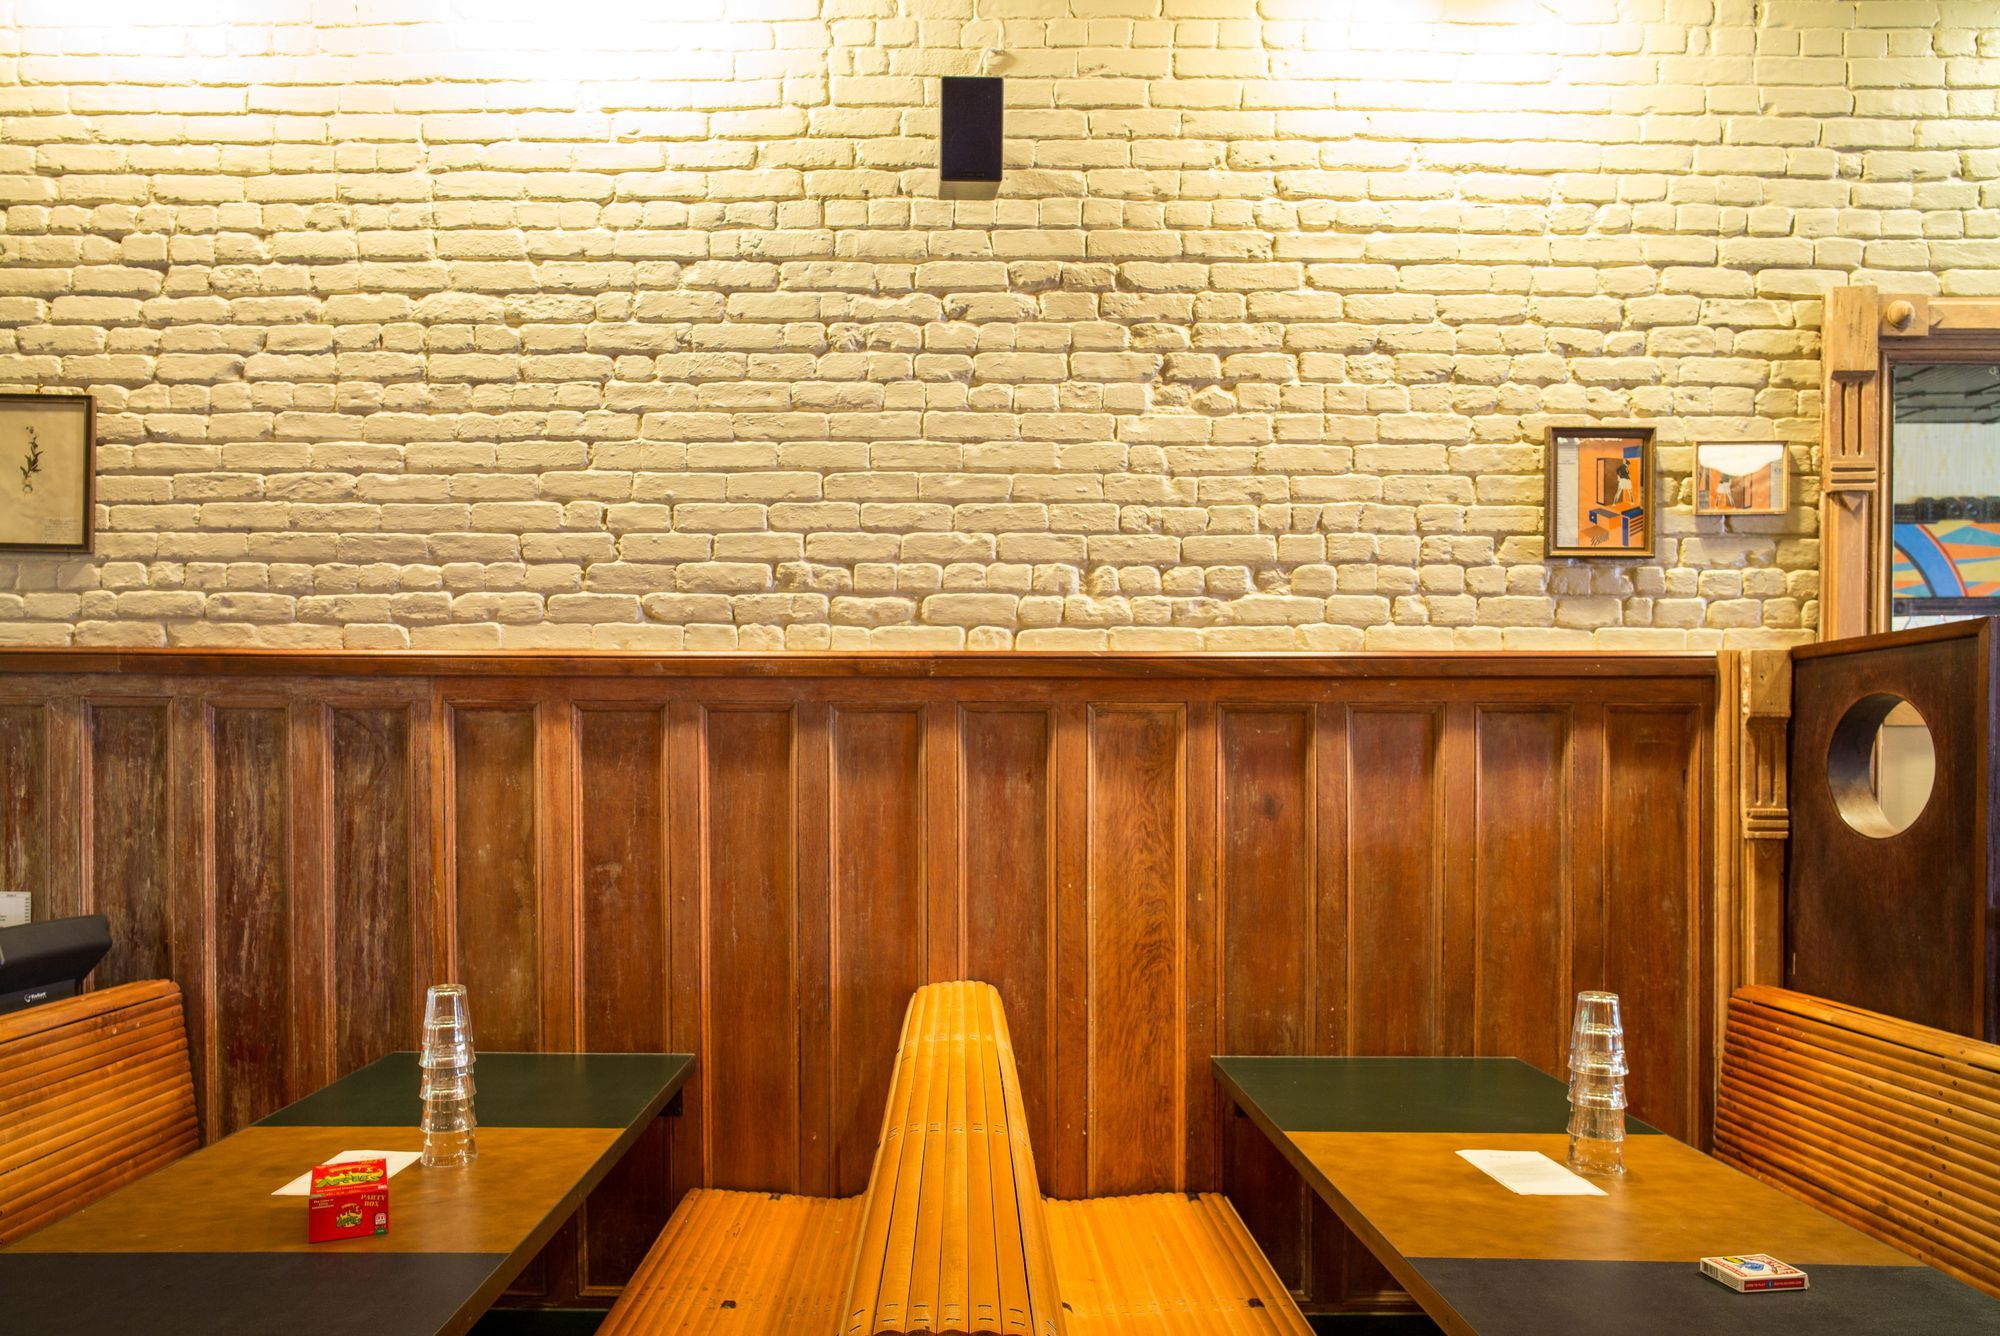 Franny's Little Sister Rose's Is a Vintage Inspired Neighborhood Bar for Prospect Heights - Eater NY